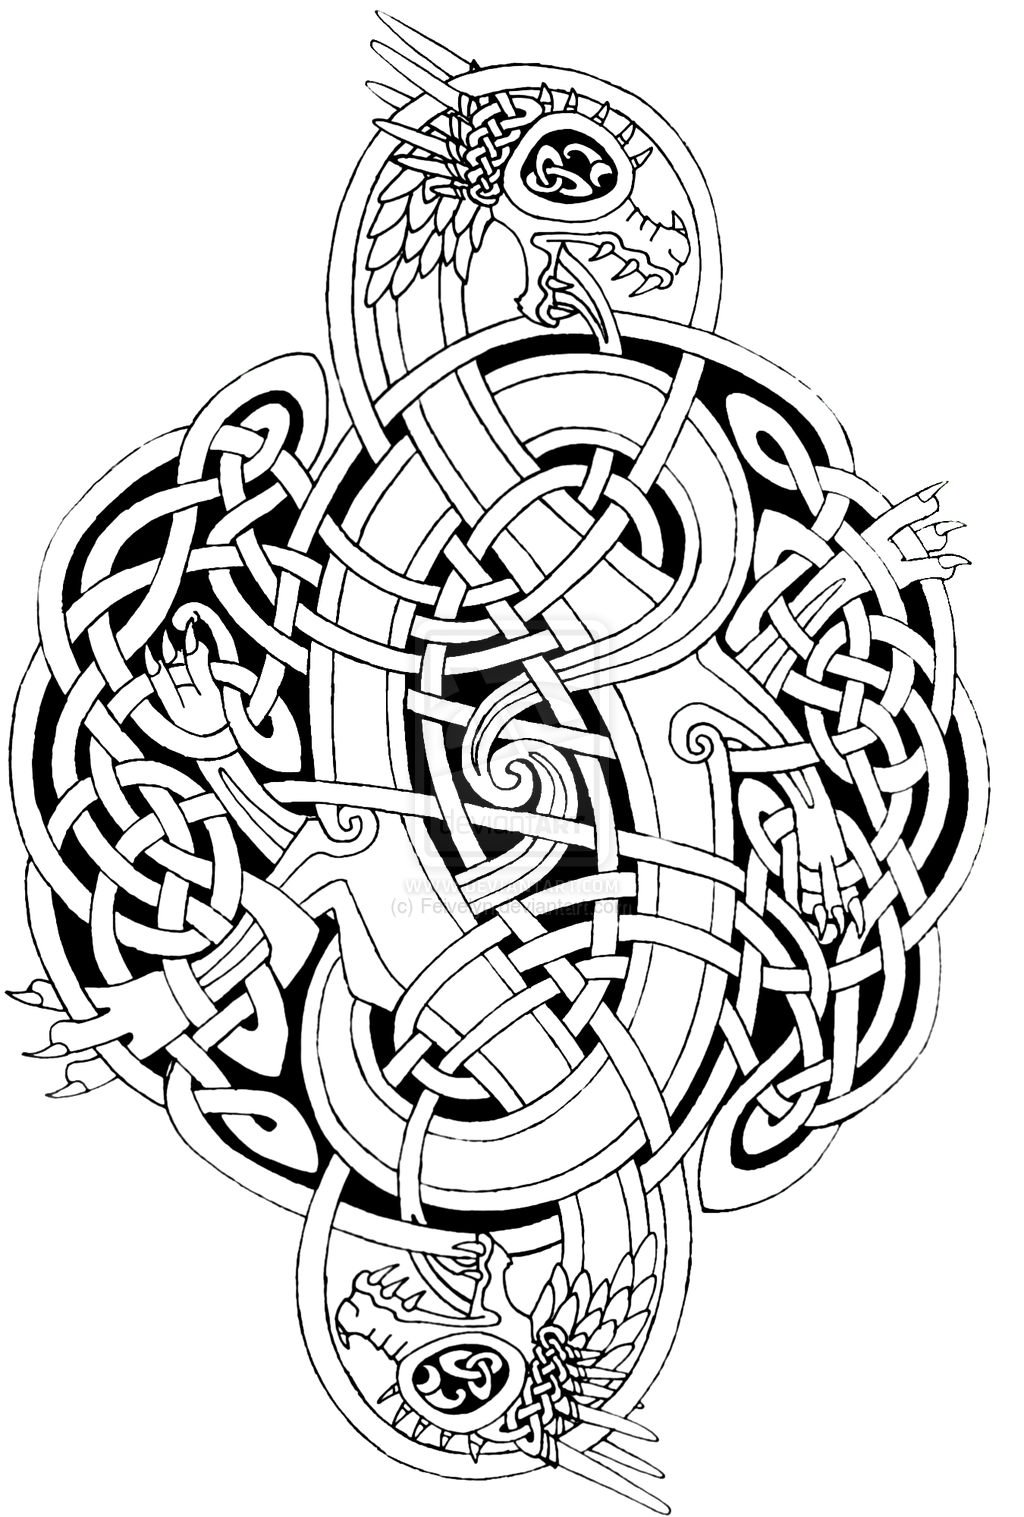 celtic mandala coloring pages for adults adult coloring pages celtic knots coloring home adults pages celtic mandala coloring for